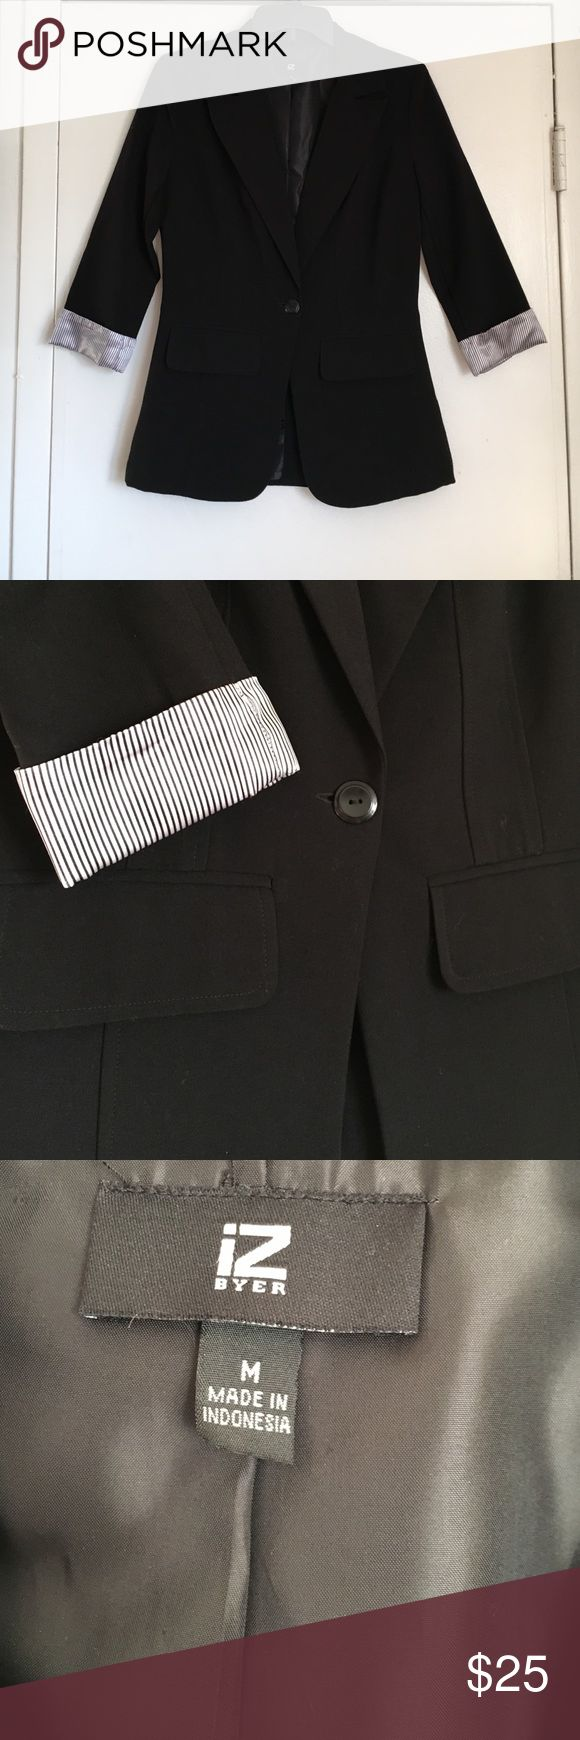 Professional Suit Jacket Women's black suit jacket with striped cuffs. In great condition. Iz Byer Jackets & Coats Blazers